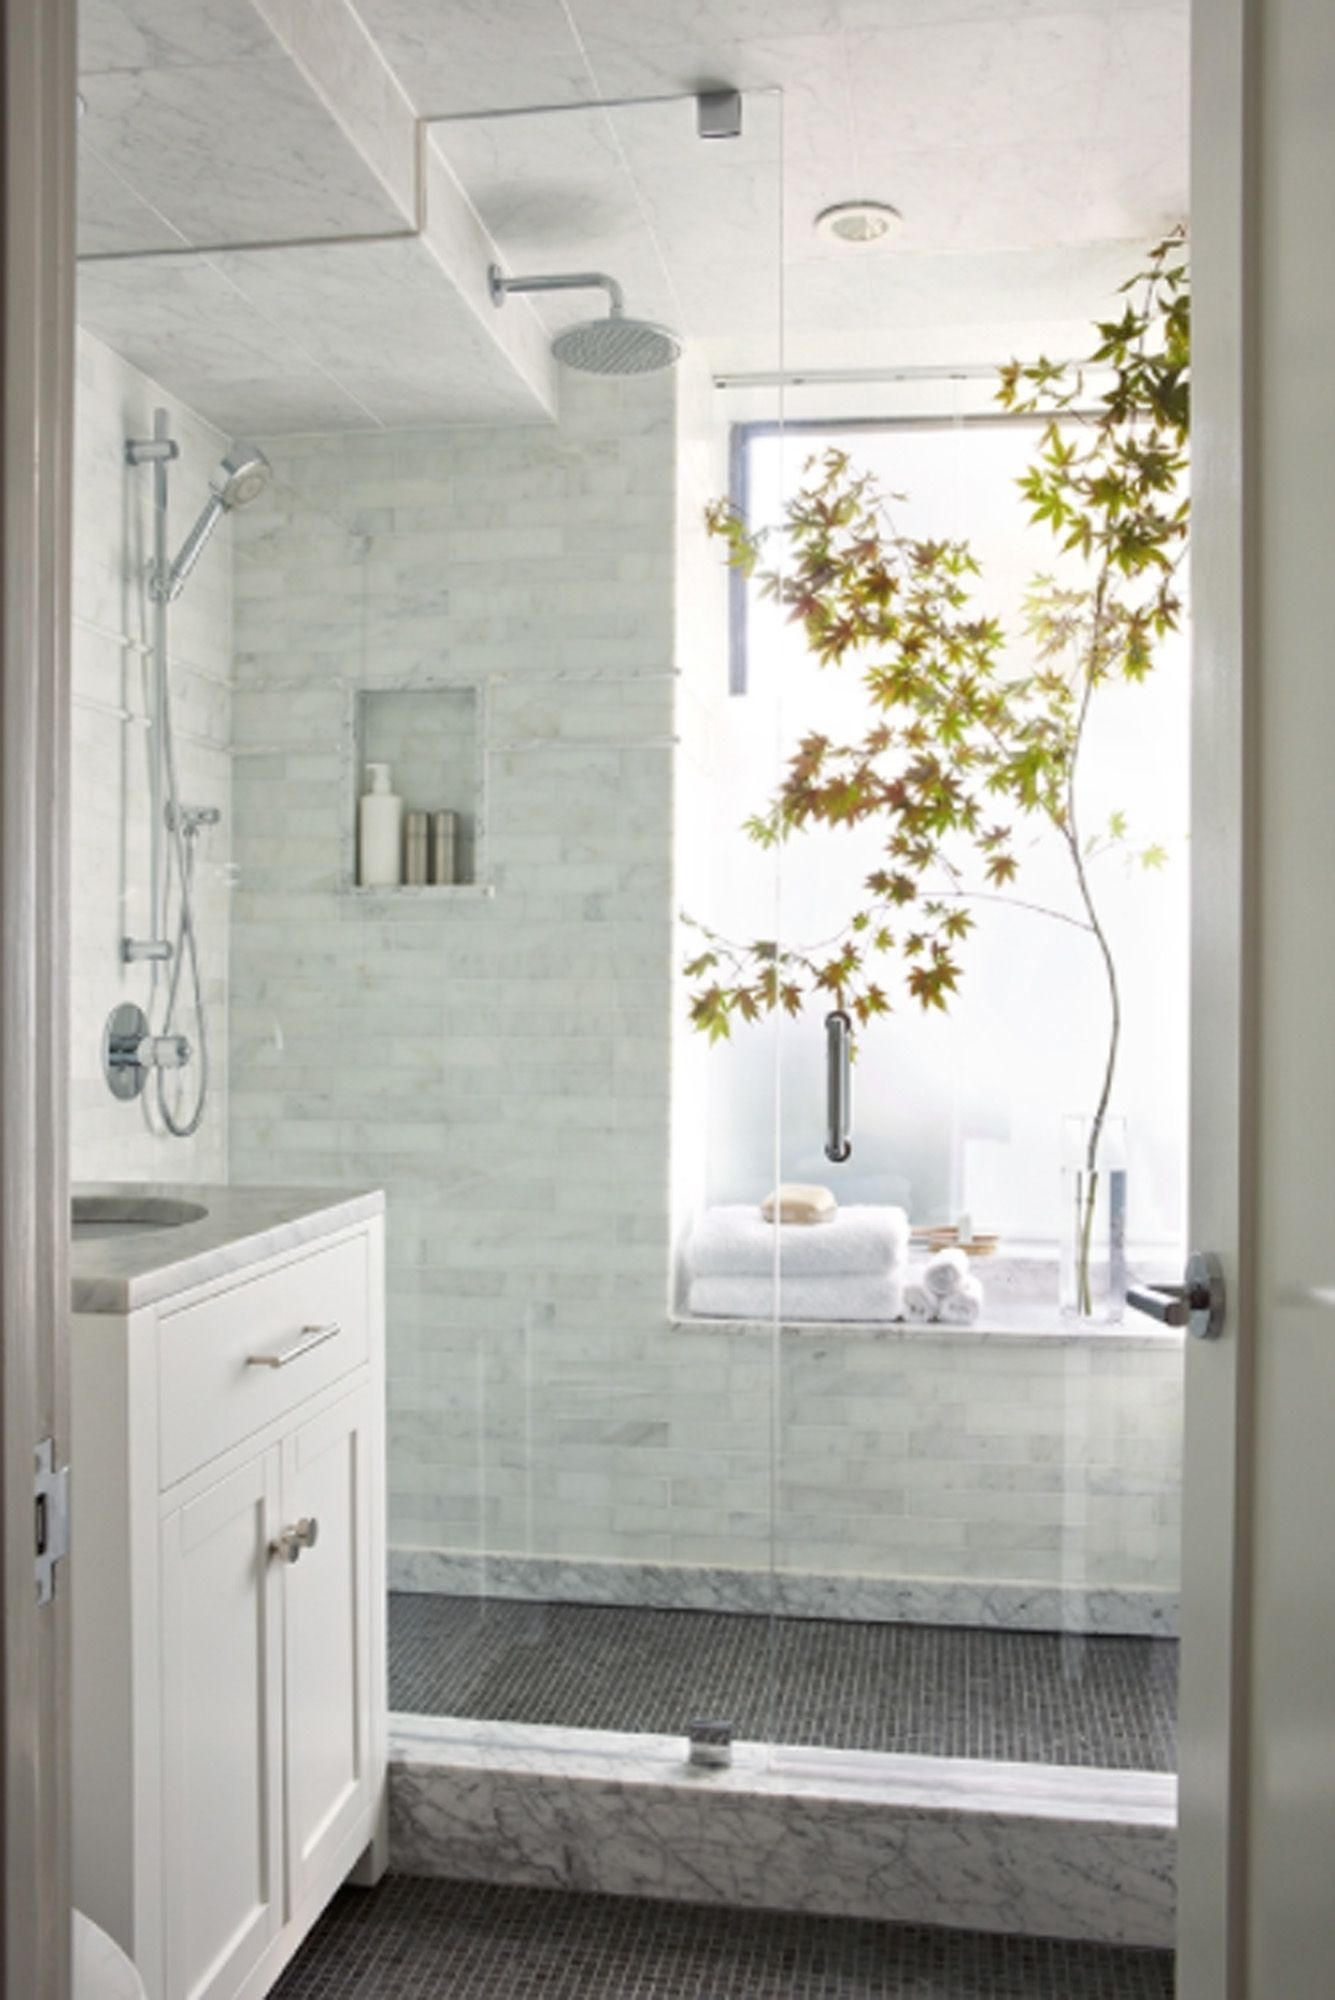 17 of the Most Glam Bathrooms, Ever | Master bathrooms, Bathroom ...